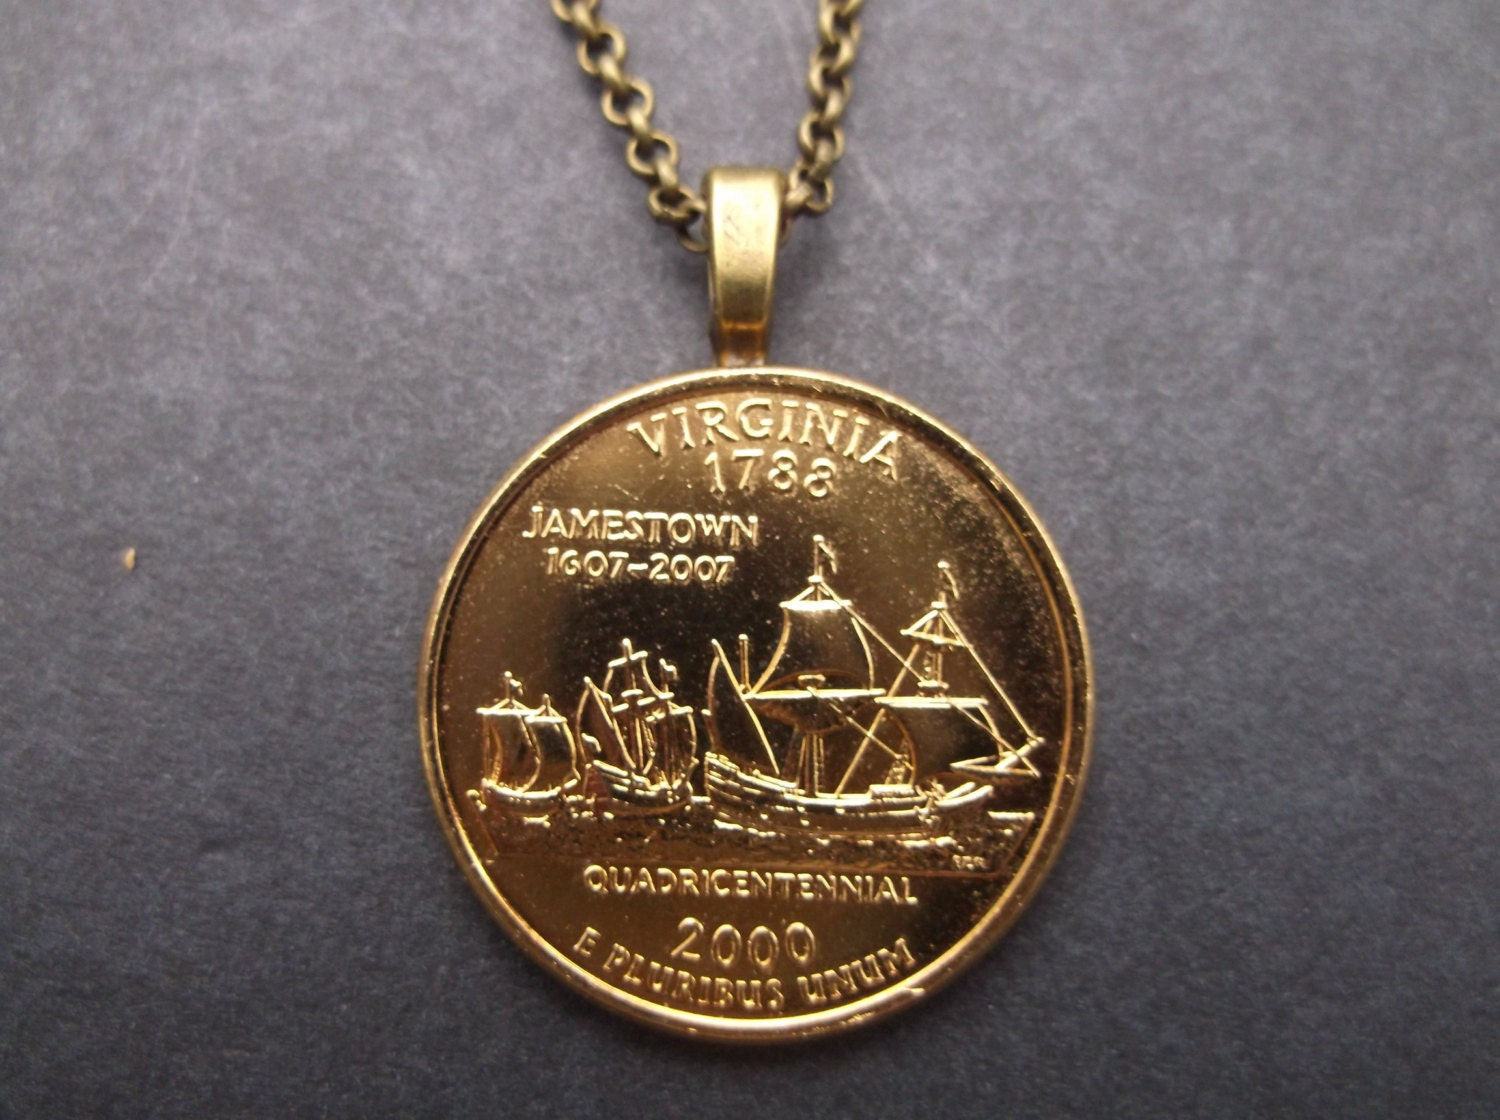 Virginia United States Gold Colored Quarter Coin Necklace